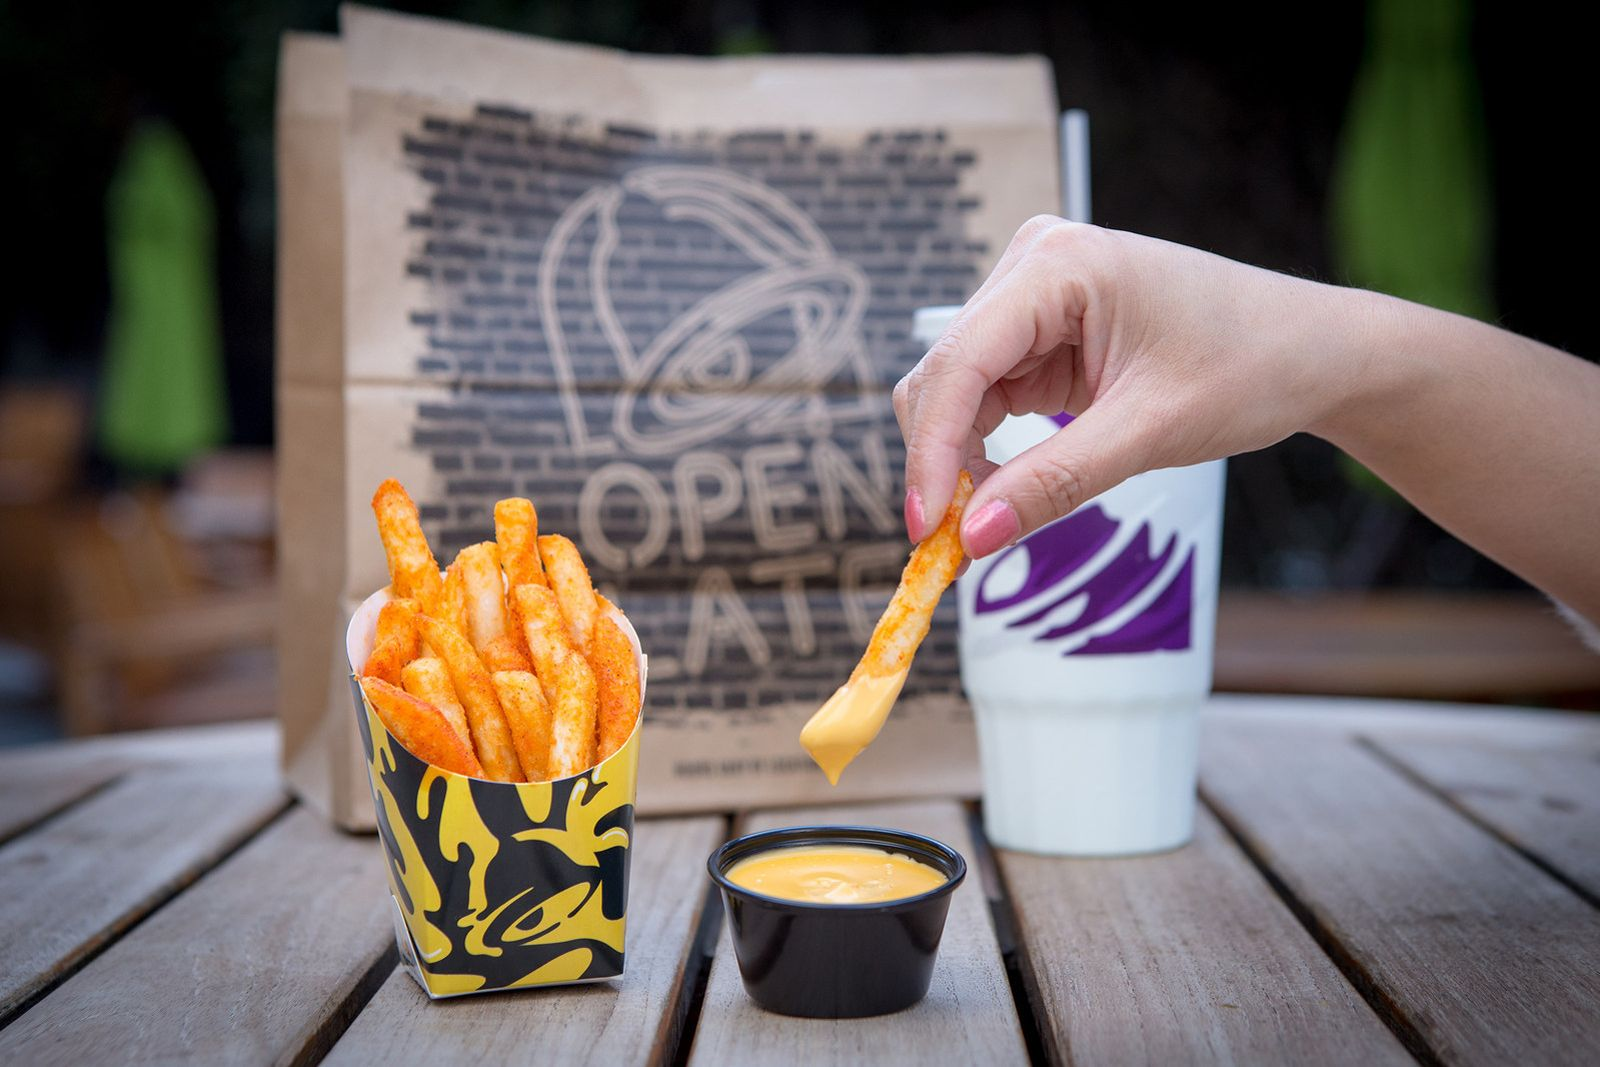 Taco Bell fires fries volley in Dollar Menu battle